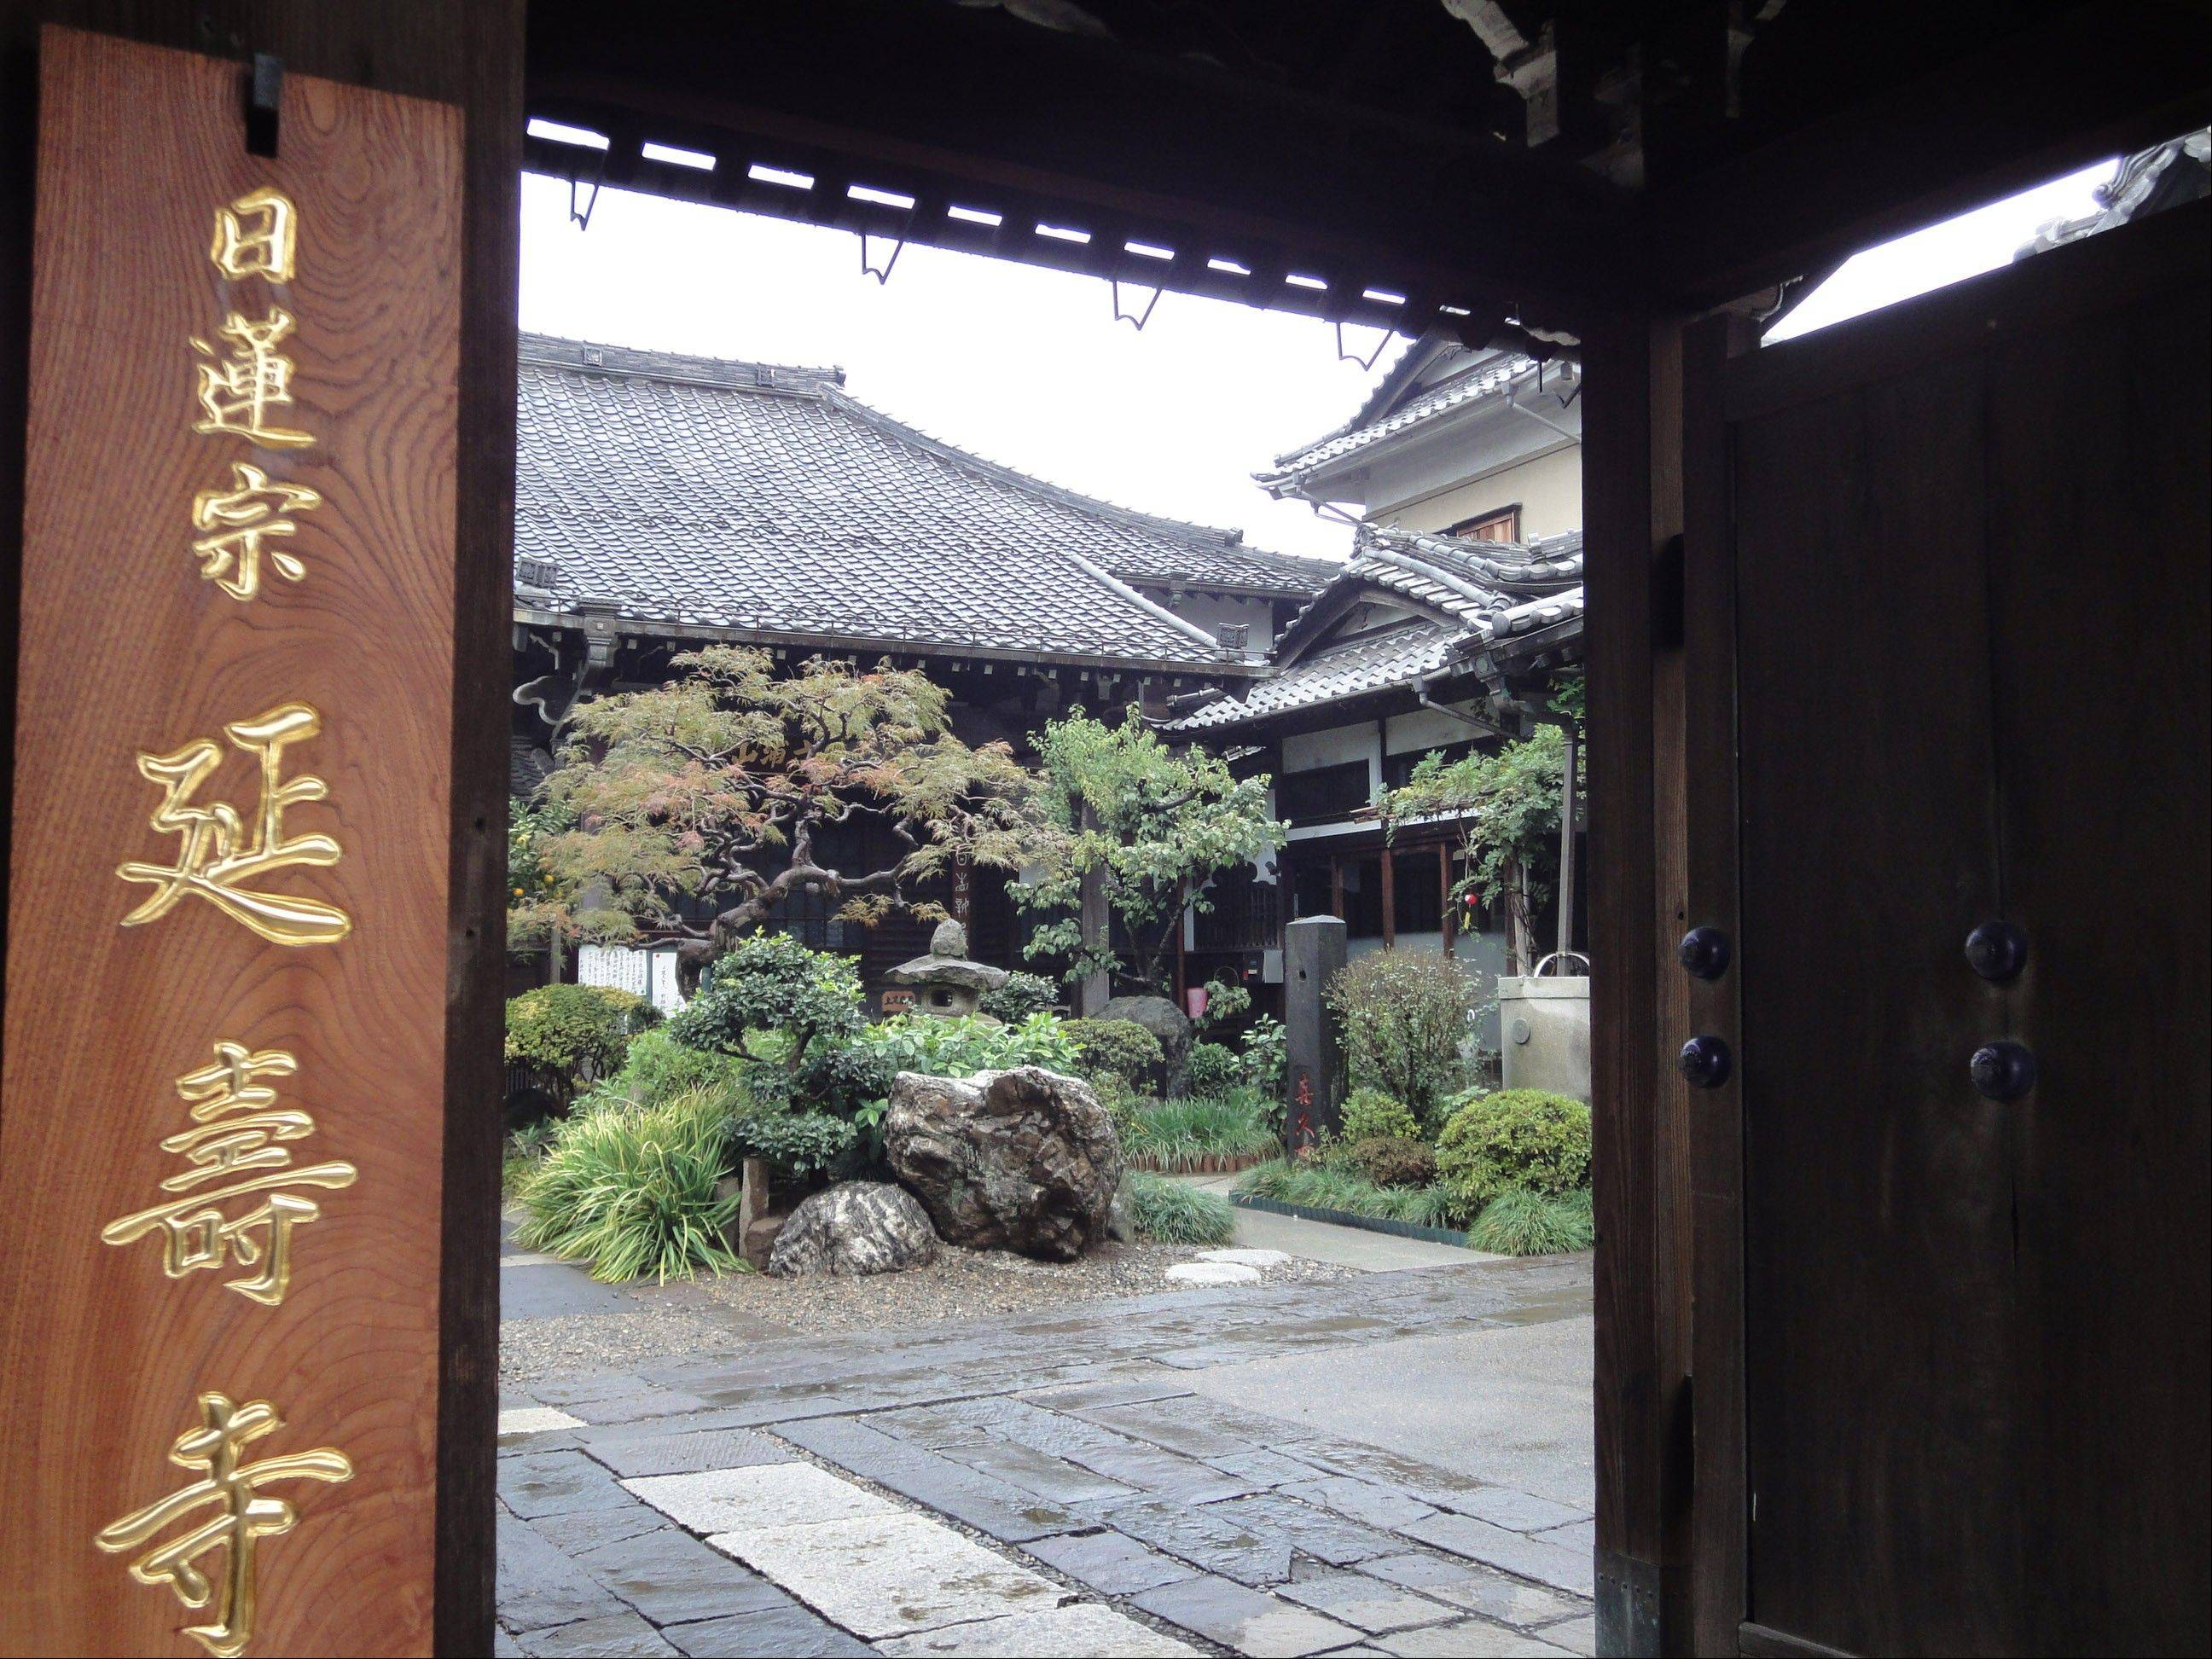 The Yanesen area (Yanaka, Sendagi, and Nezu) of Tokyo has an unusually large number of temples, with 73 in Yanaka alone.